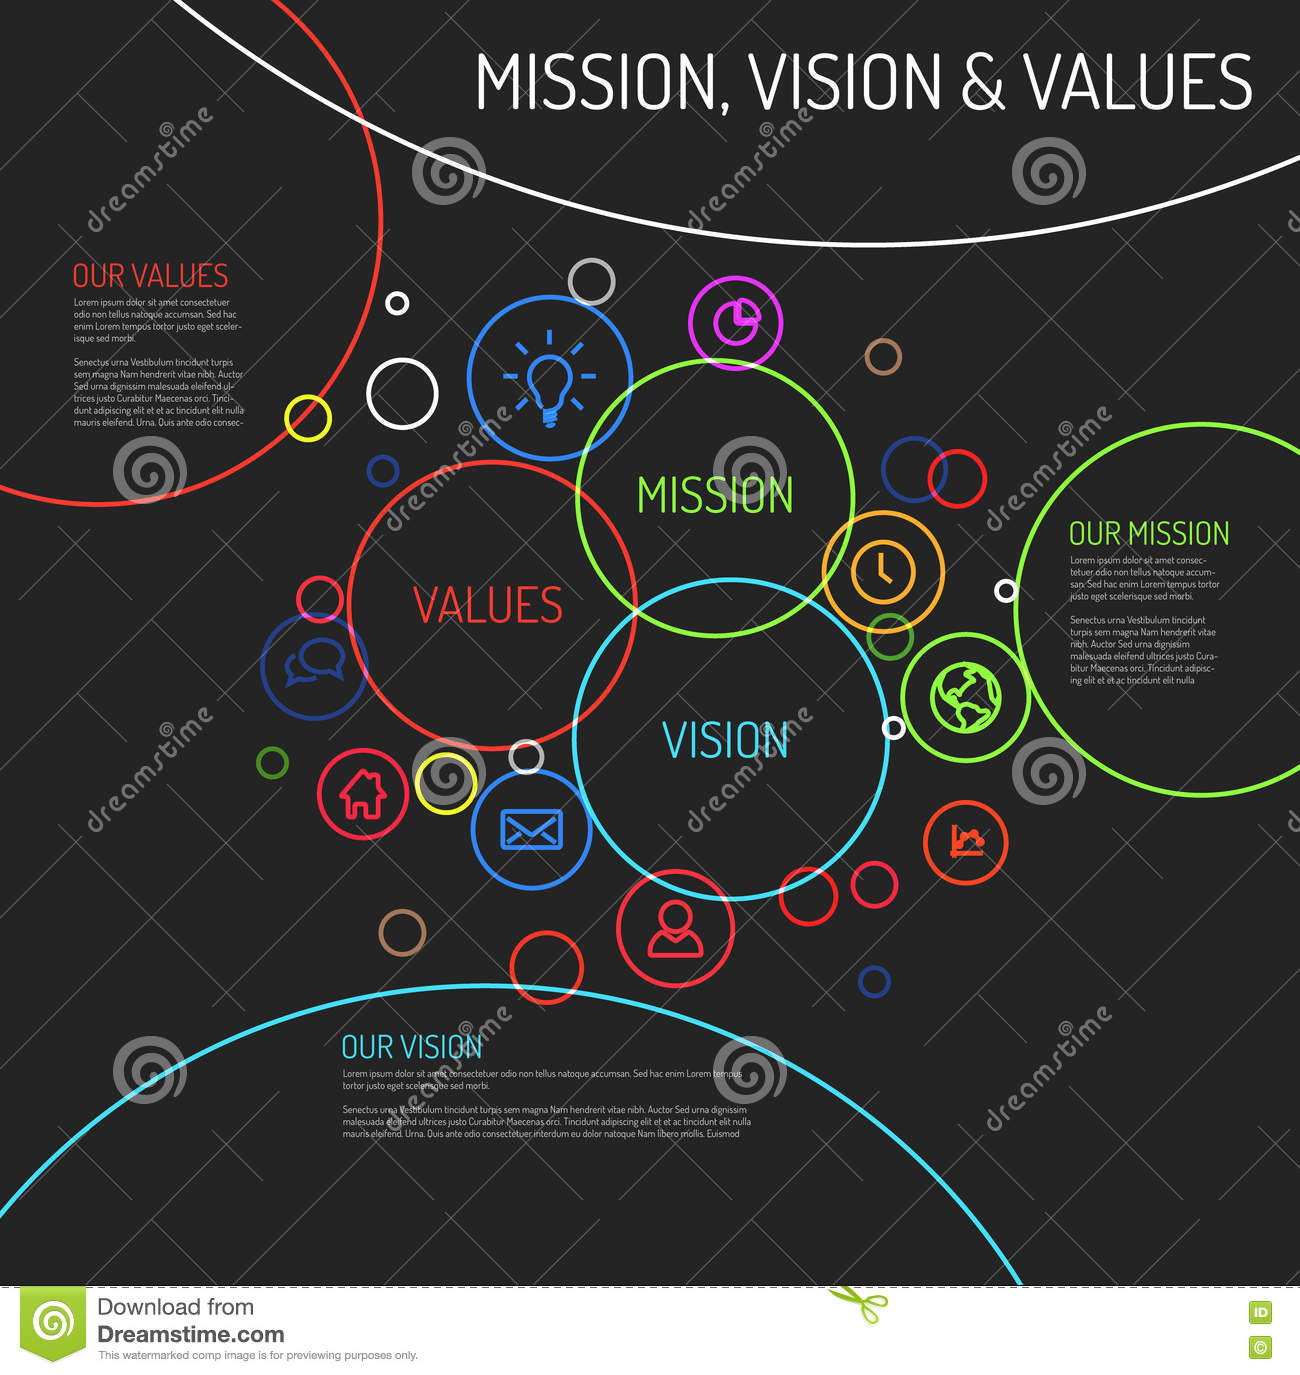 blank venn diagram 4 circles dark mission, vision and values statement diagram schema ...